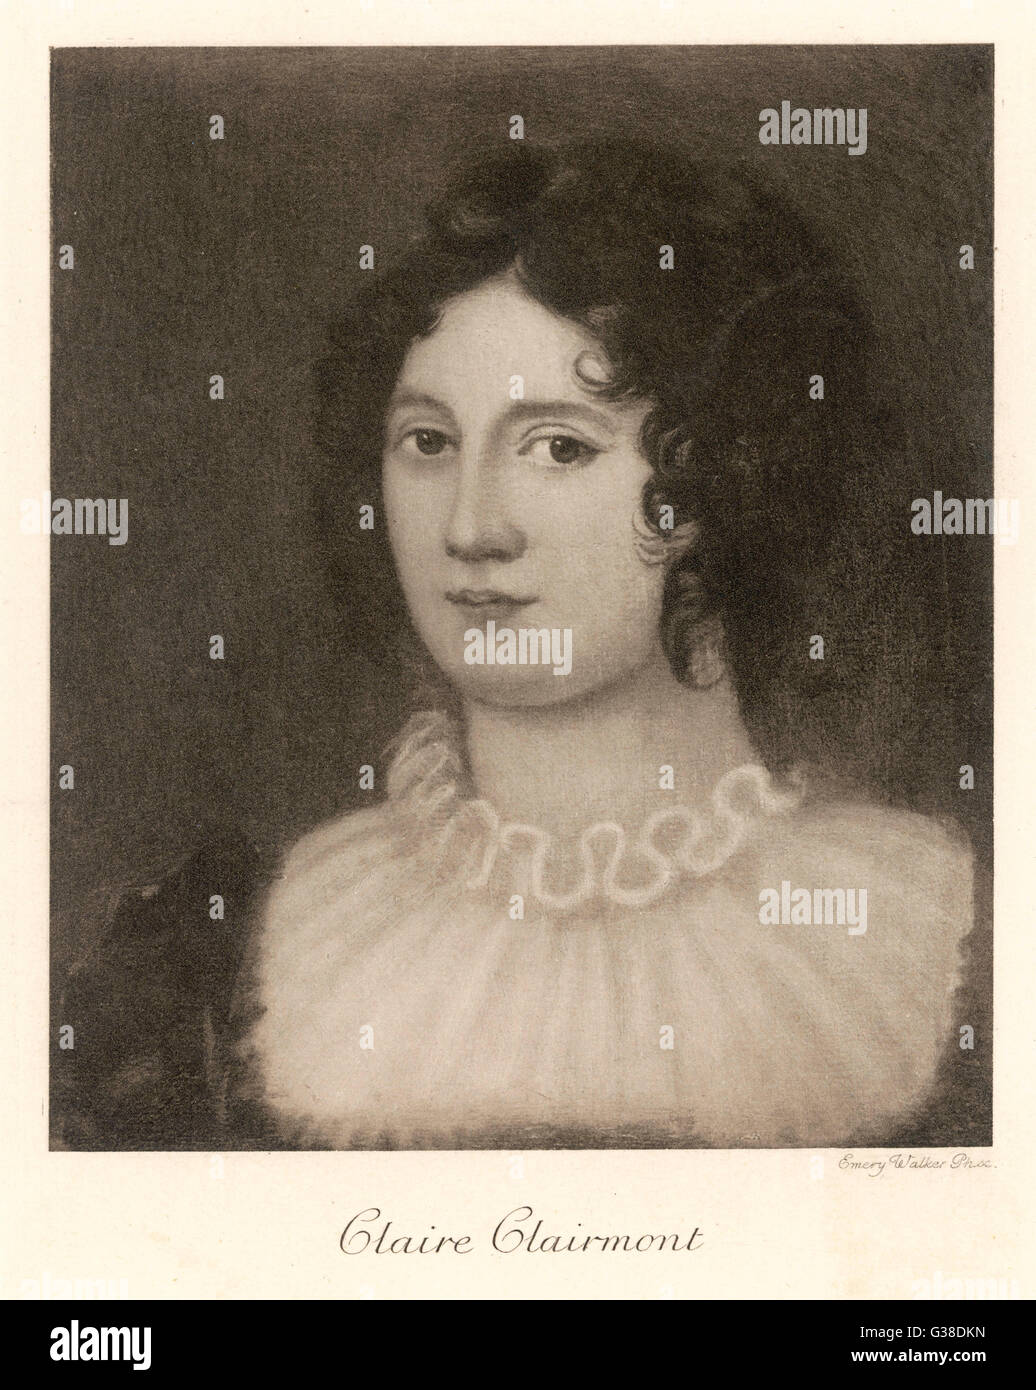 CLAIRE CLAIRMONT  stepdaughter of William  Godwin, and mother of Byron's  daughter Allegra      Date: 1798  - Stock Image